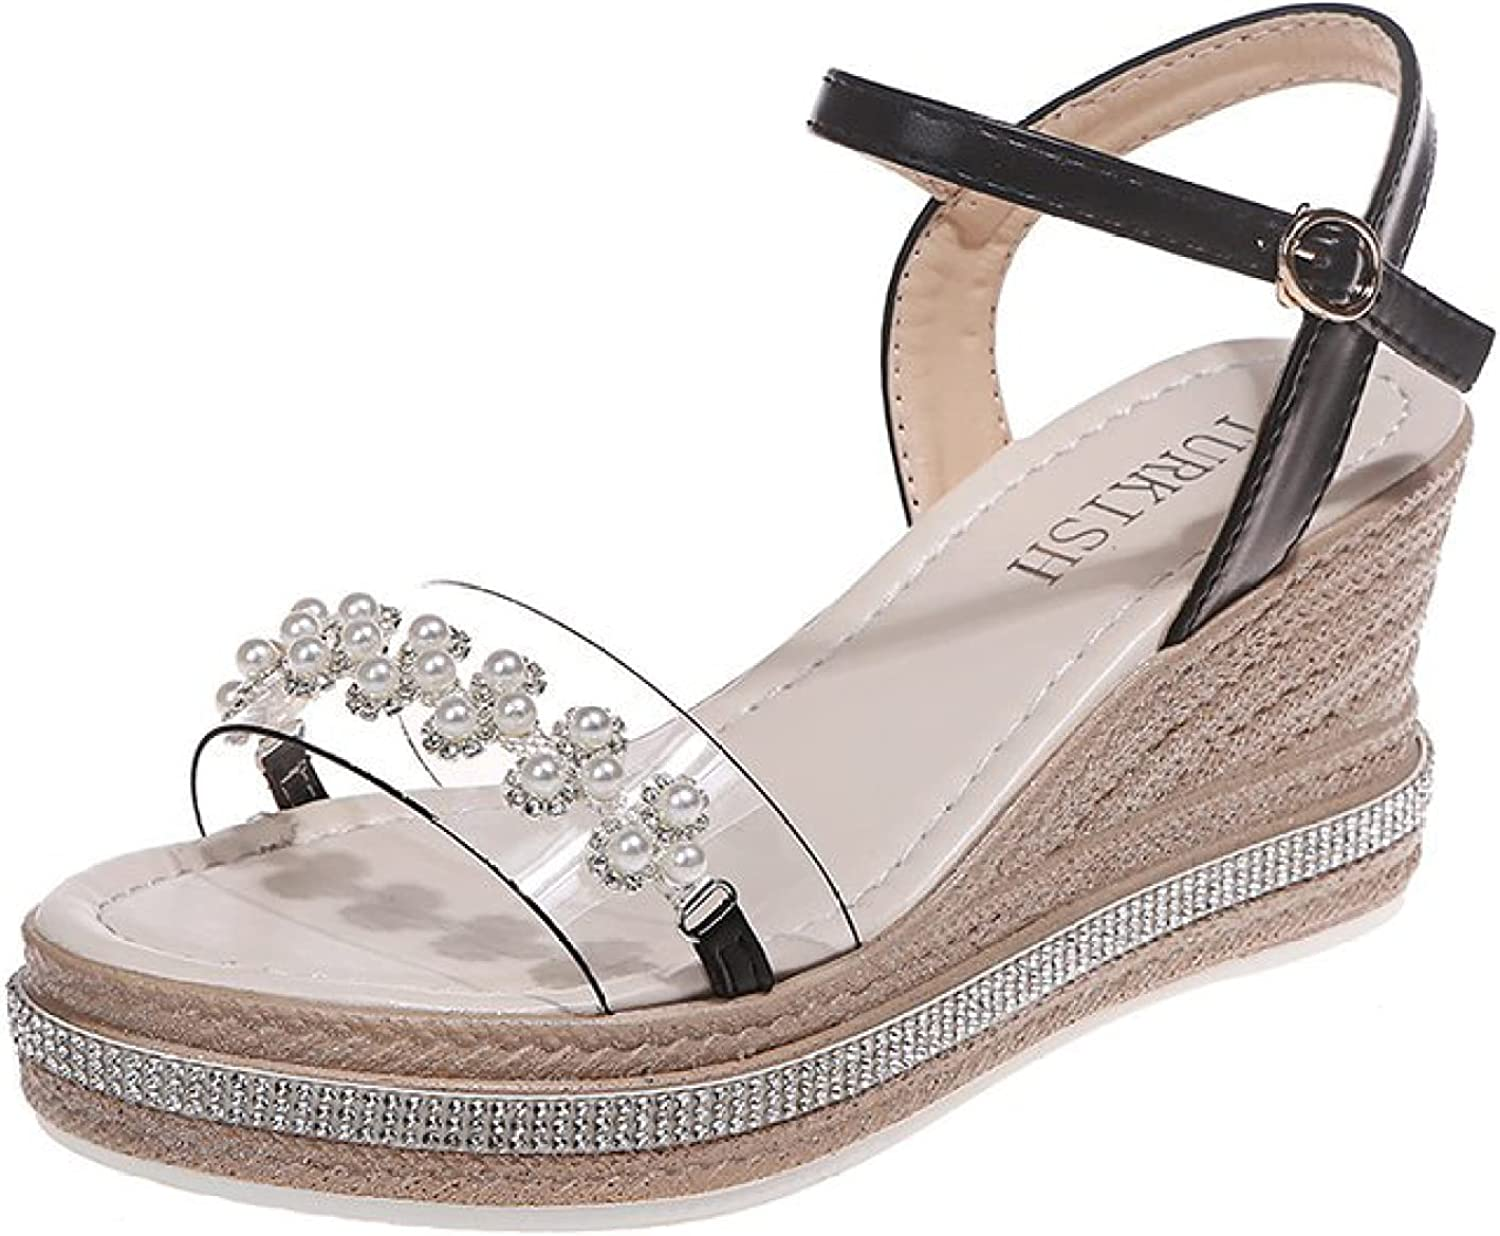 Rhinestone Wedge Shoes for Womens Outdoor Small Bead Floral Open Toe Fashion Fairy Sandal For Party Dress